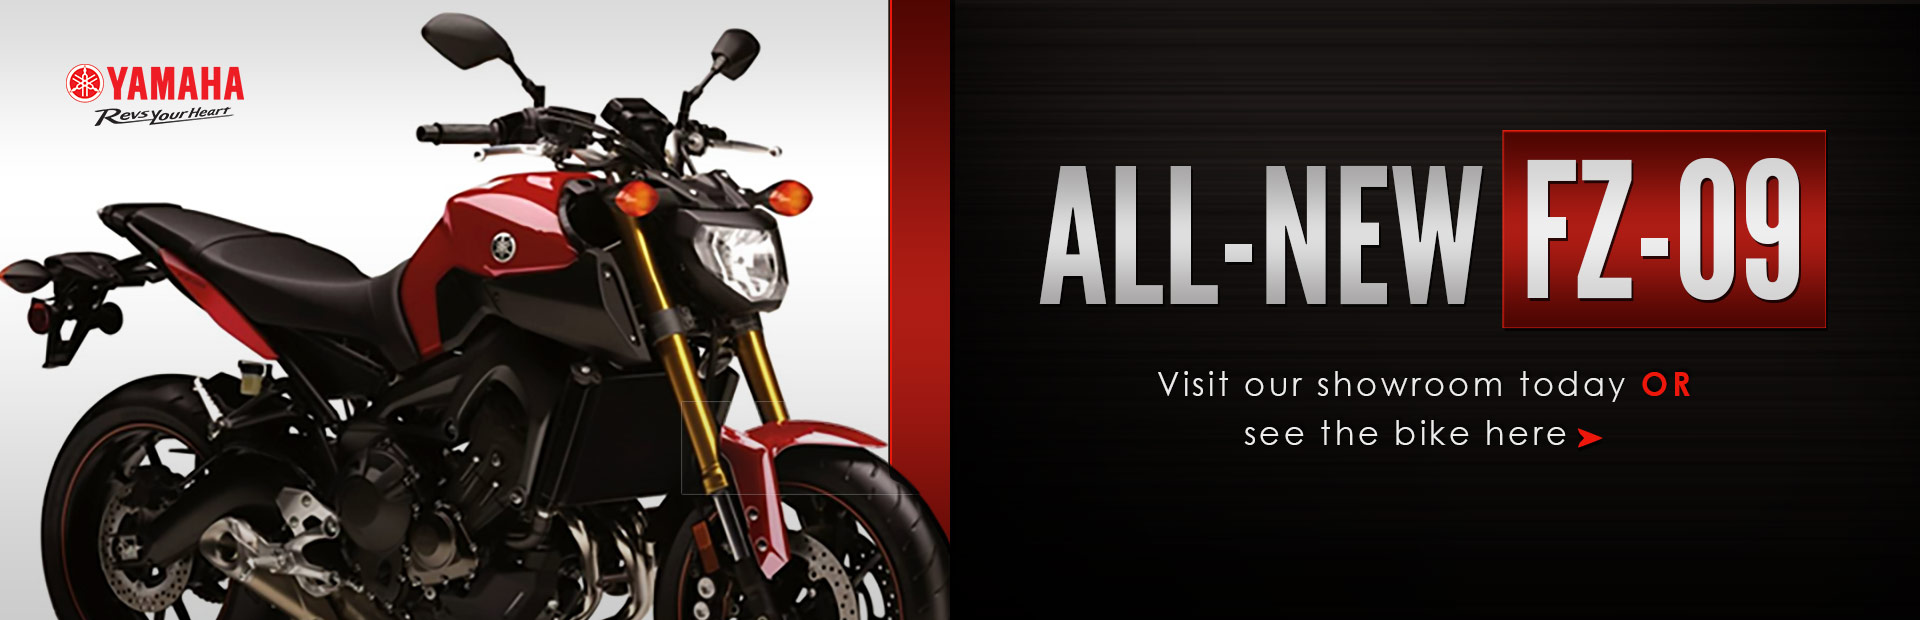 View the 2014 Yamaha FZ-09.